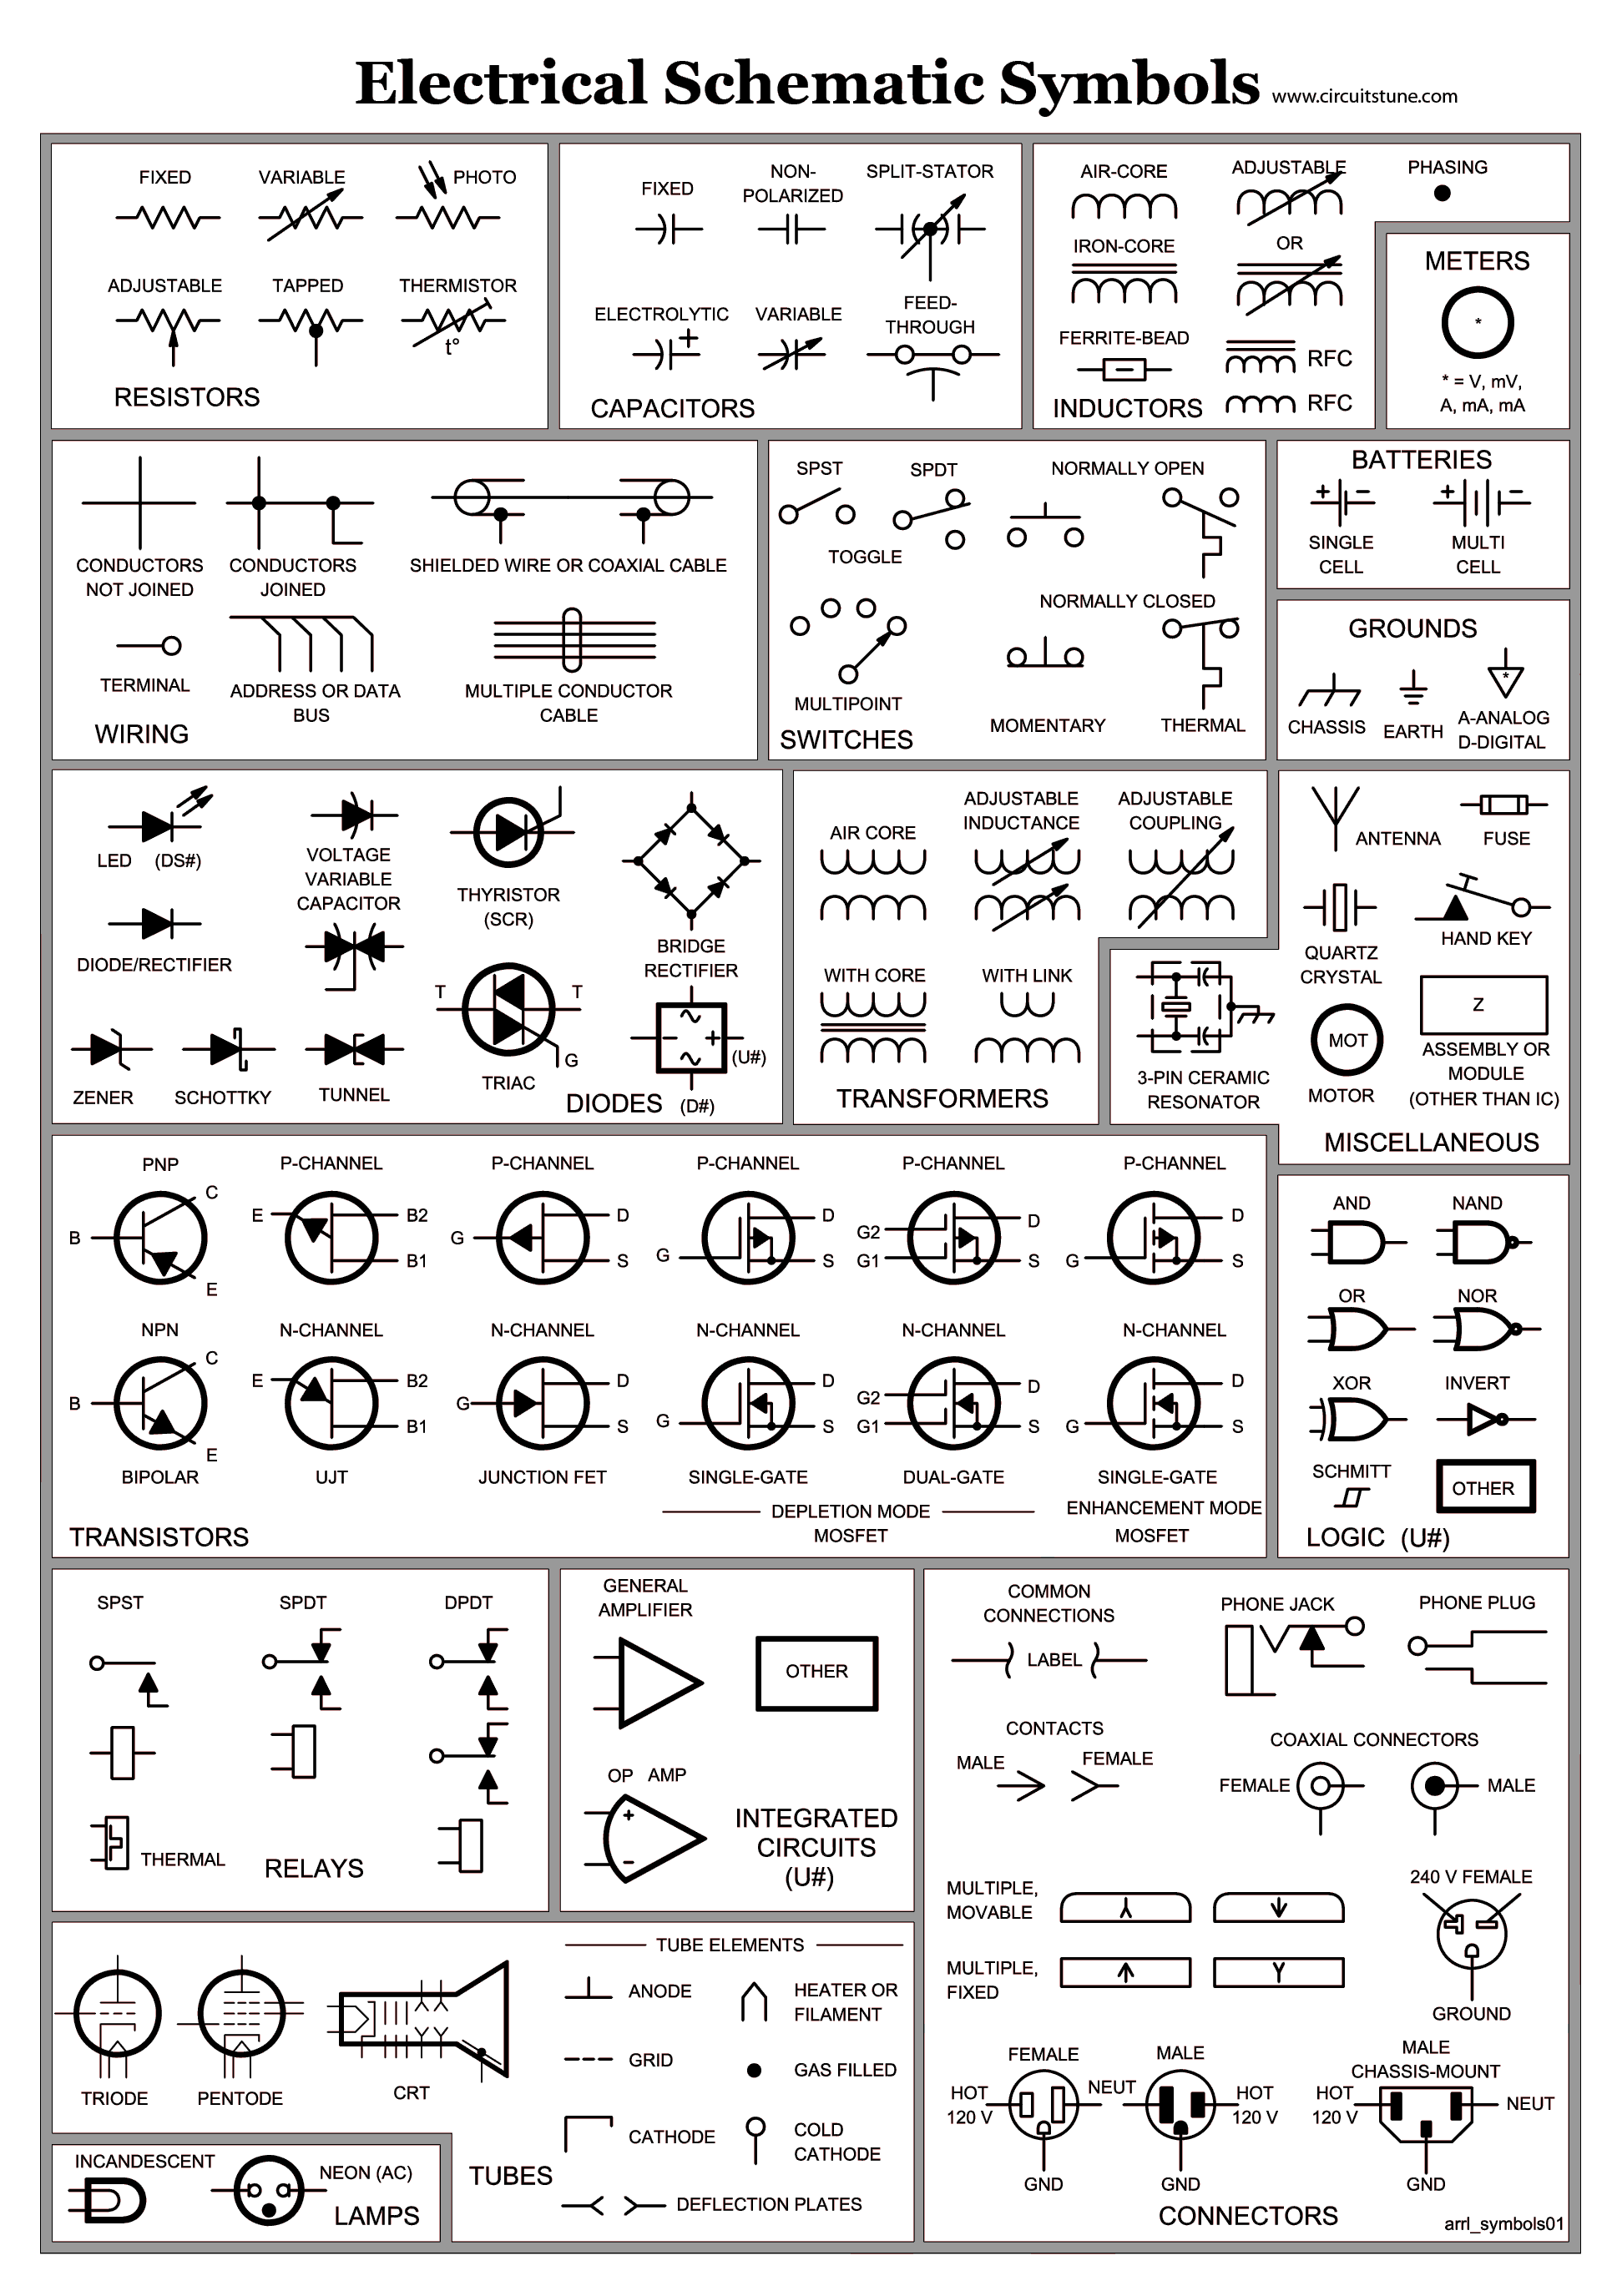 medium resolution of electrical schematic symbols wire diagram symbols automotive wiring schematic